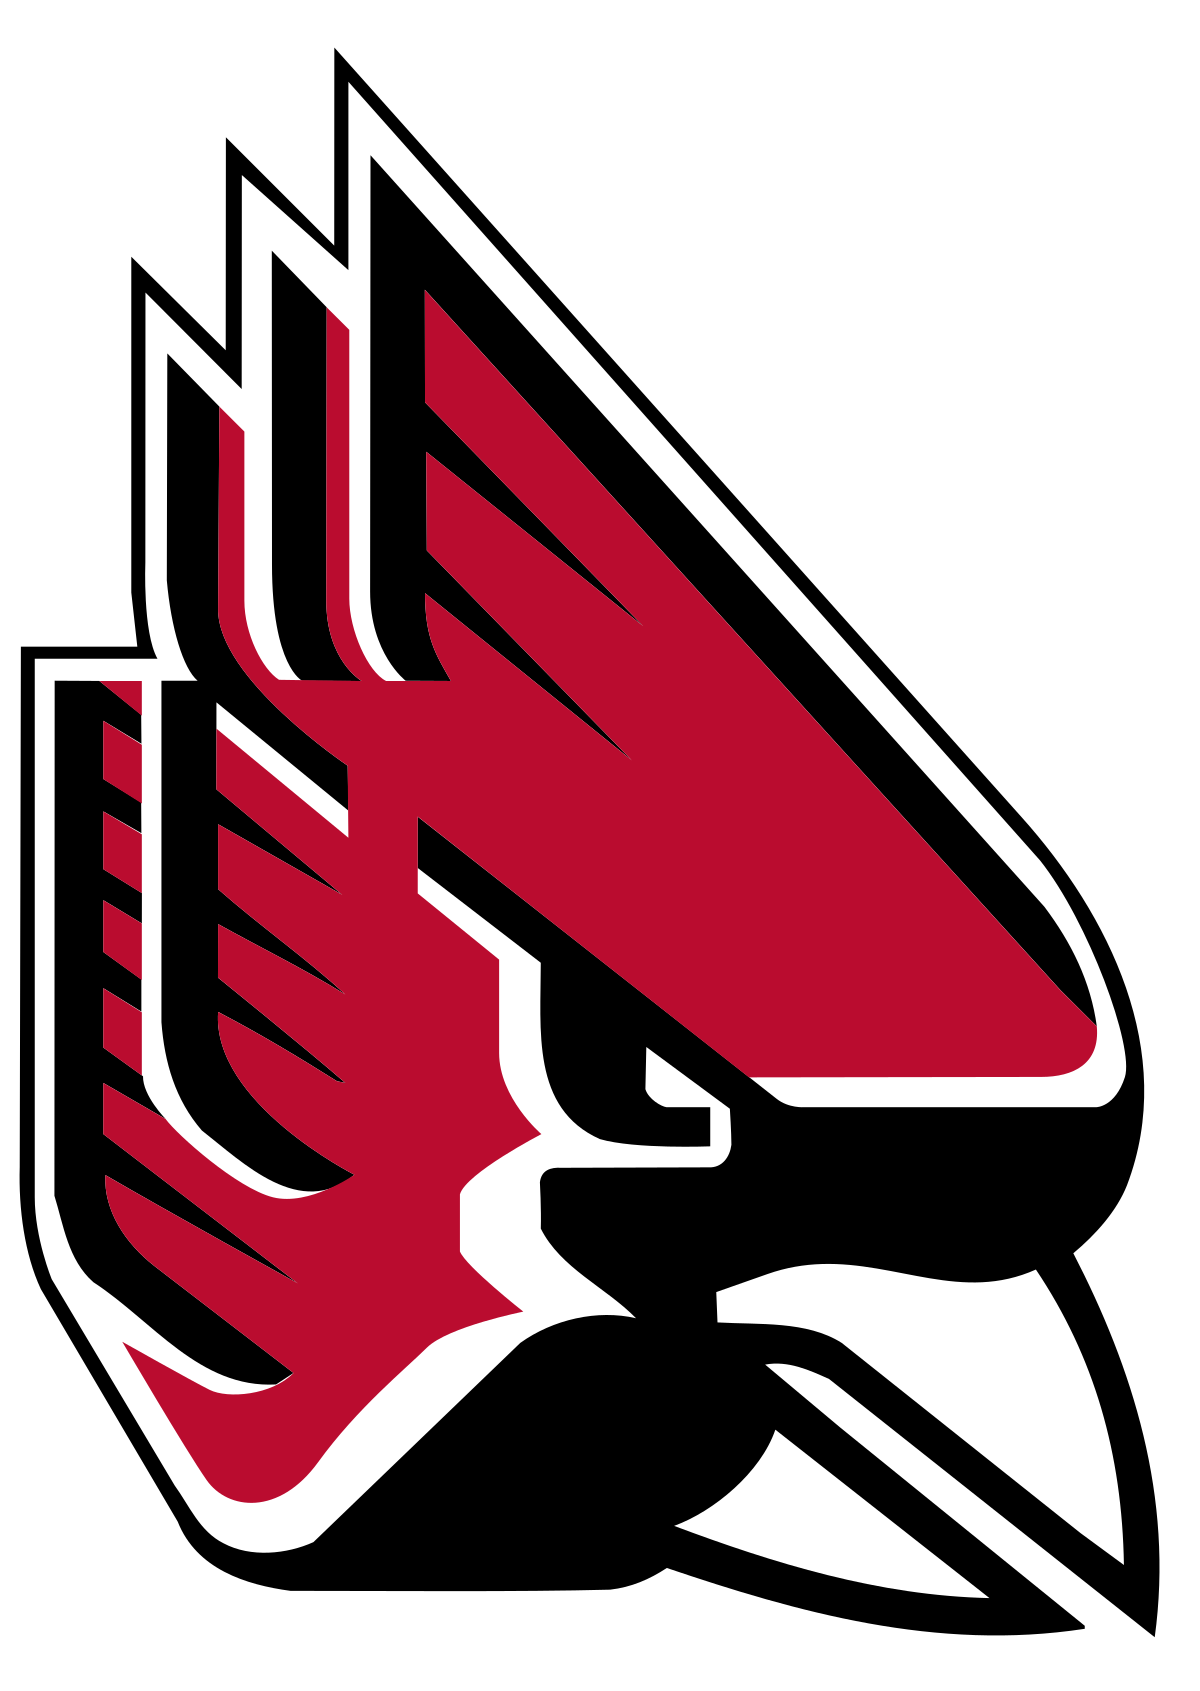 Cardinals wikipedia . Ball state bell tower png graphic free library